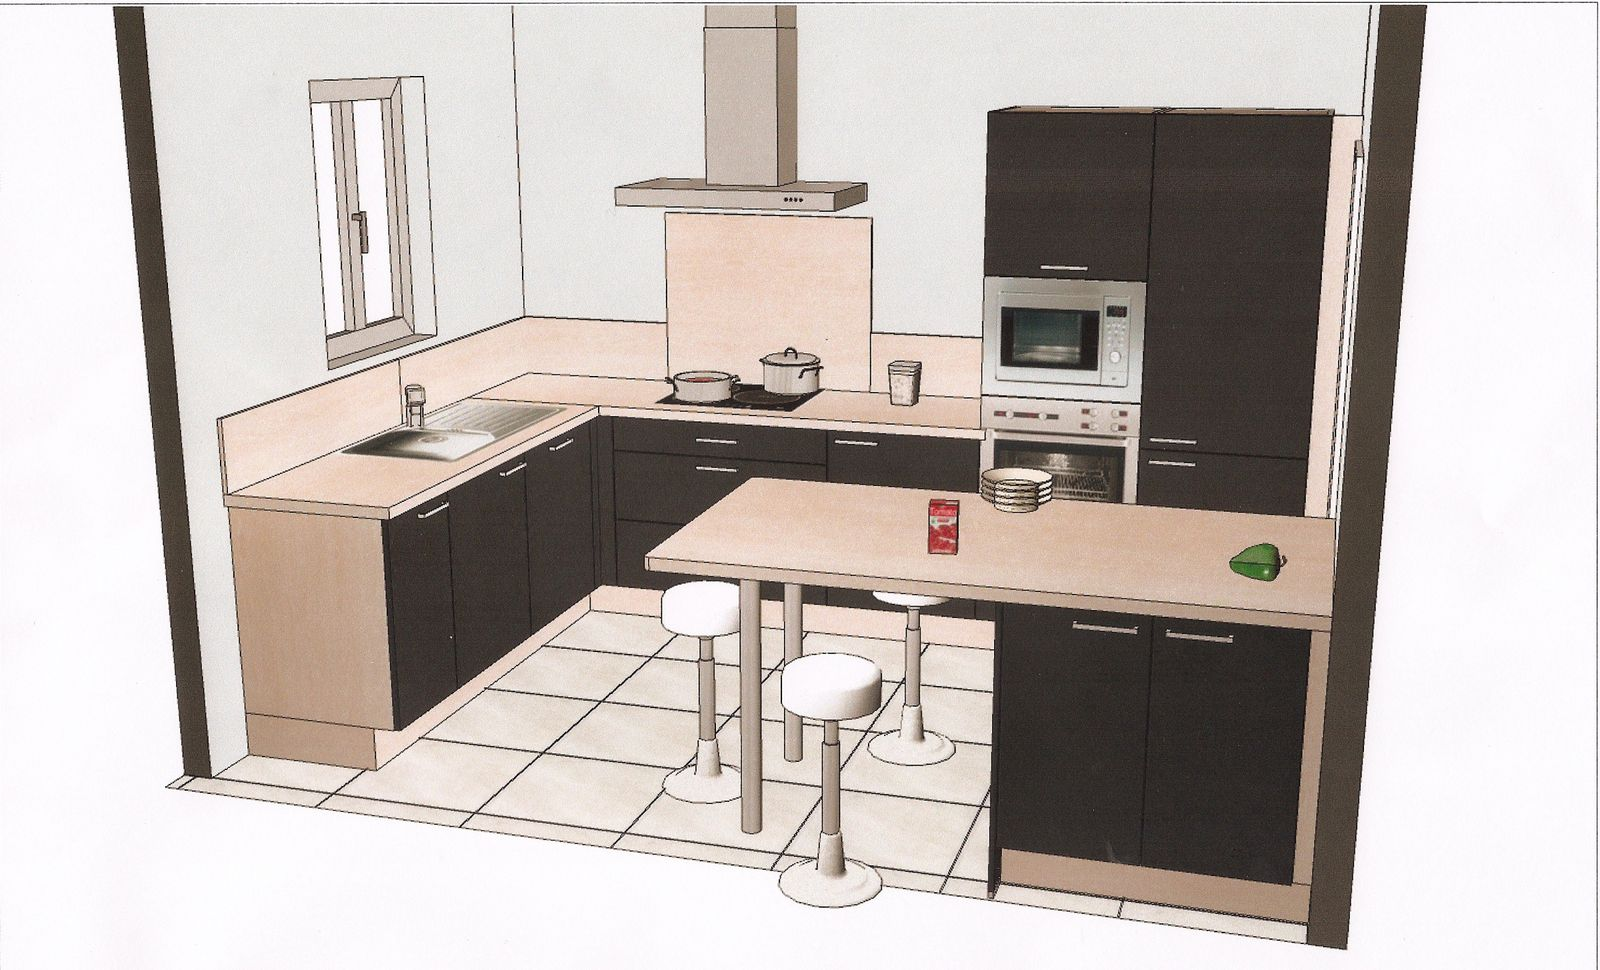 plan petite cuisine amenagee maison design On plan cuisine amenagee